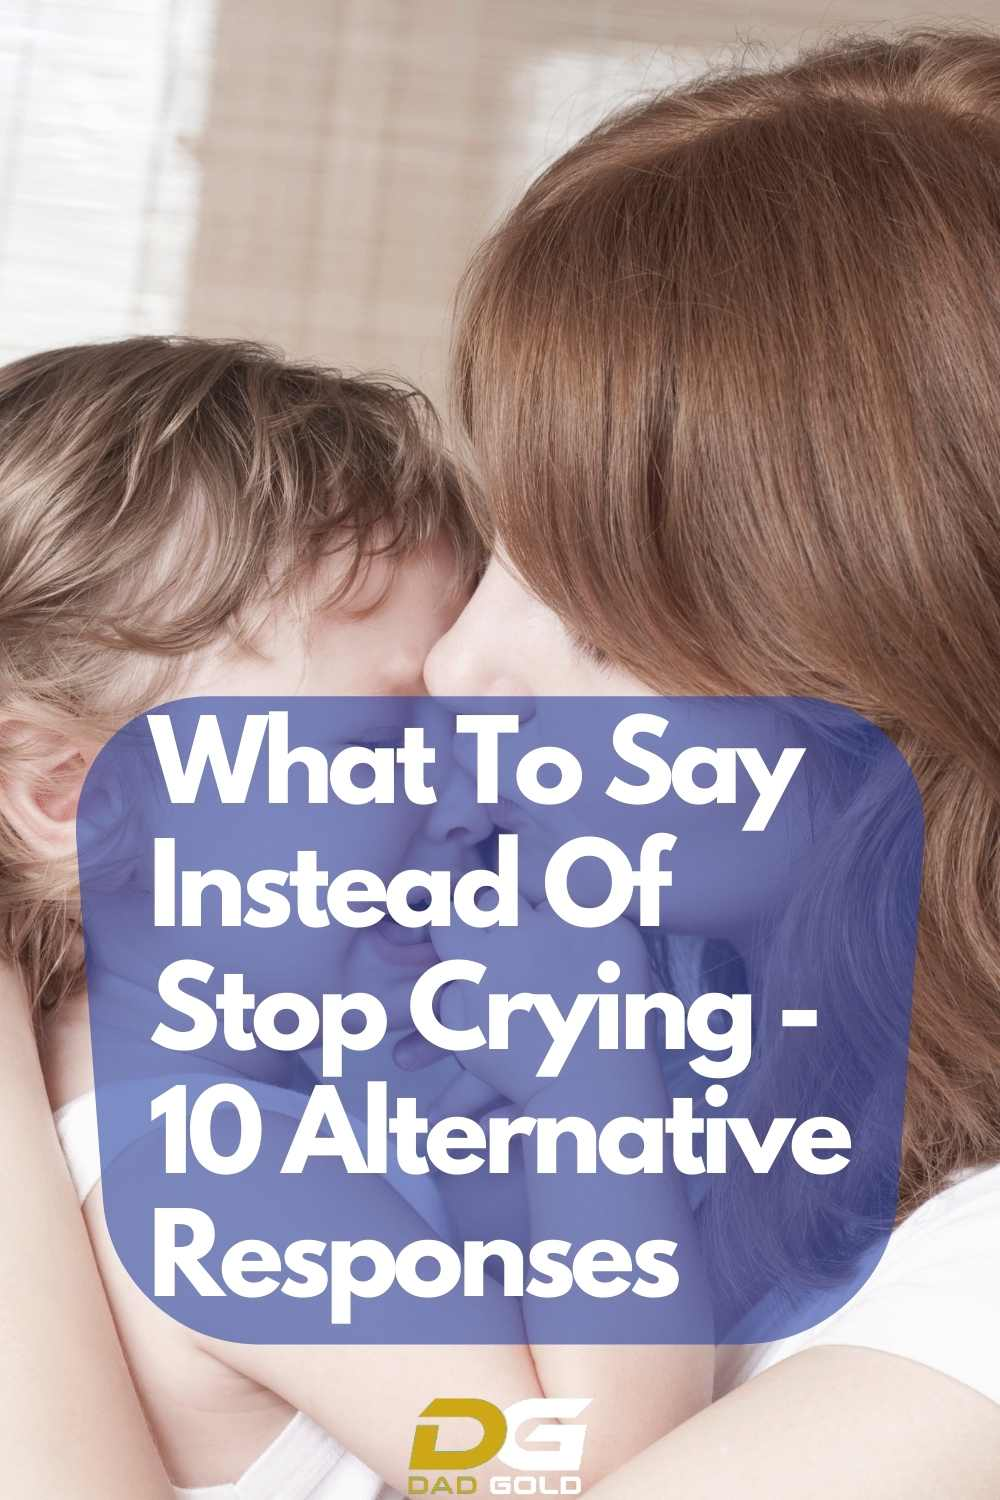 What To Say Instead Of Stop Crying Dad Gold Parenting Tips